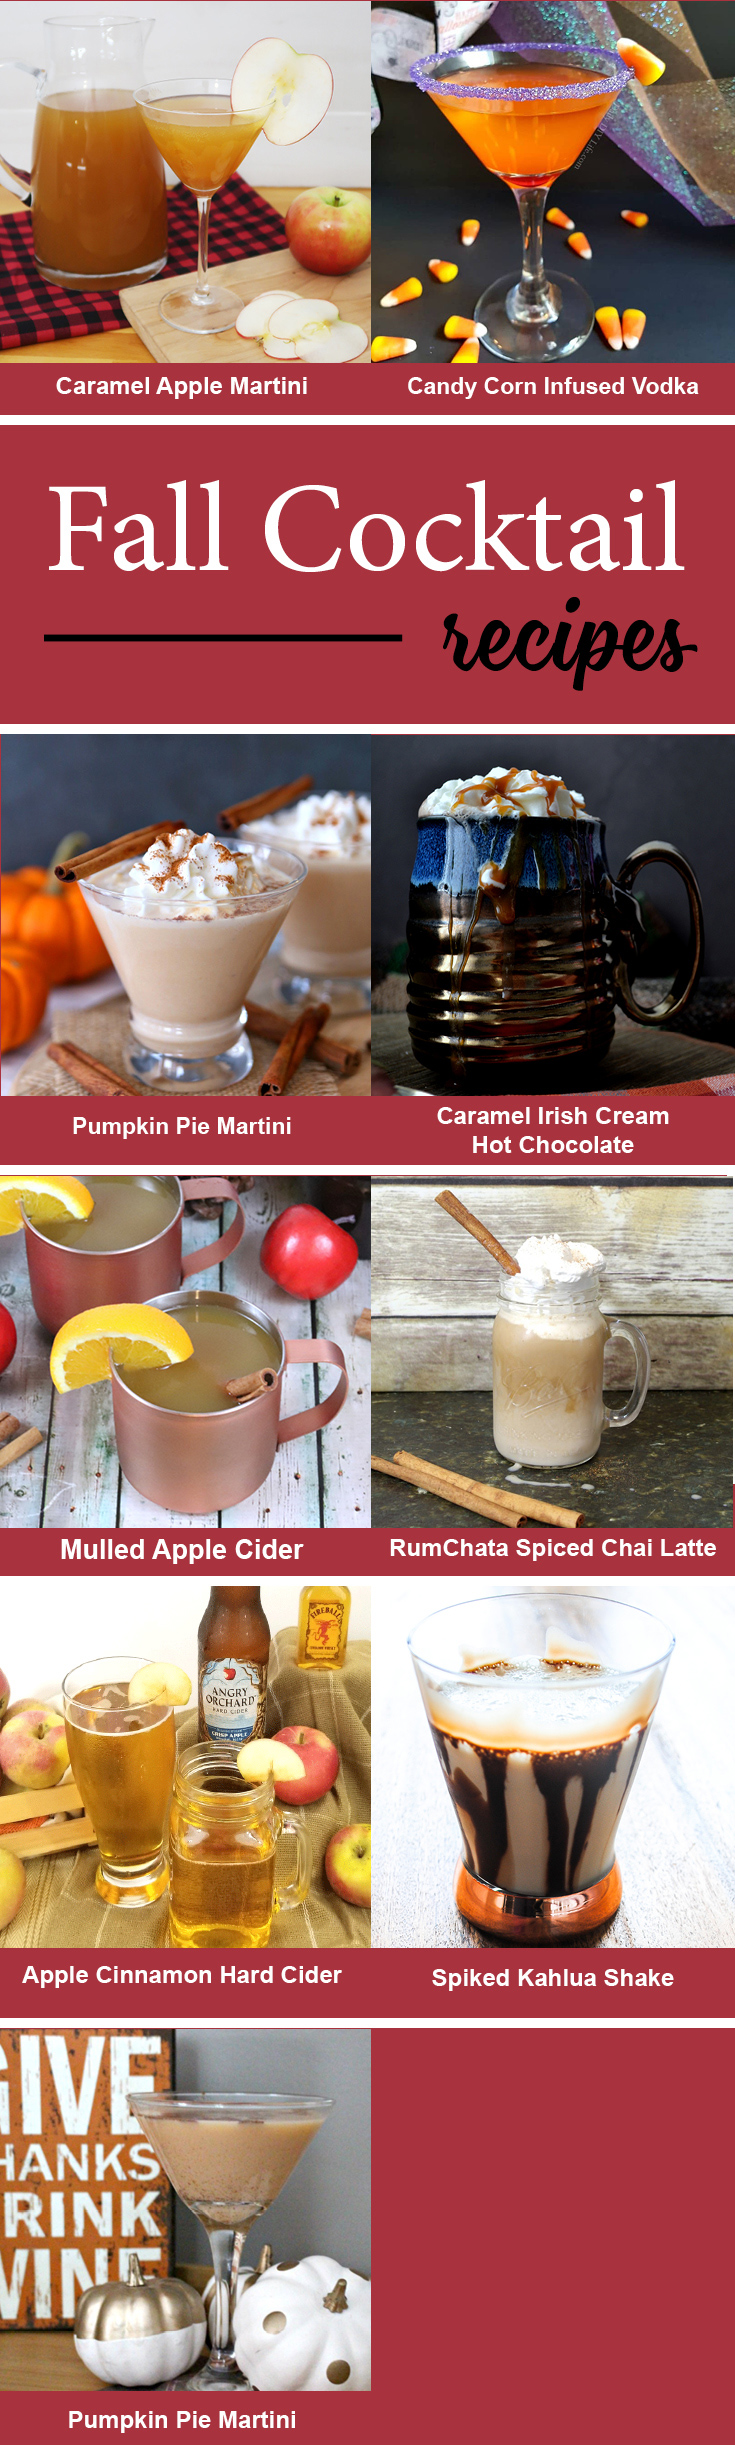 9-Fall-Cocktails_SM.jpg